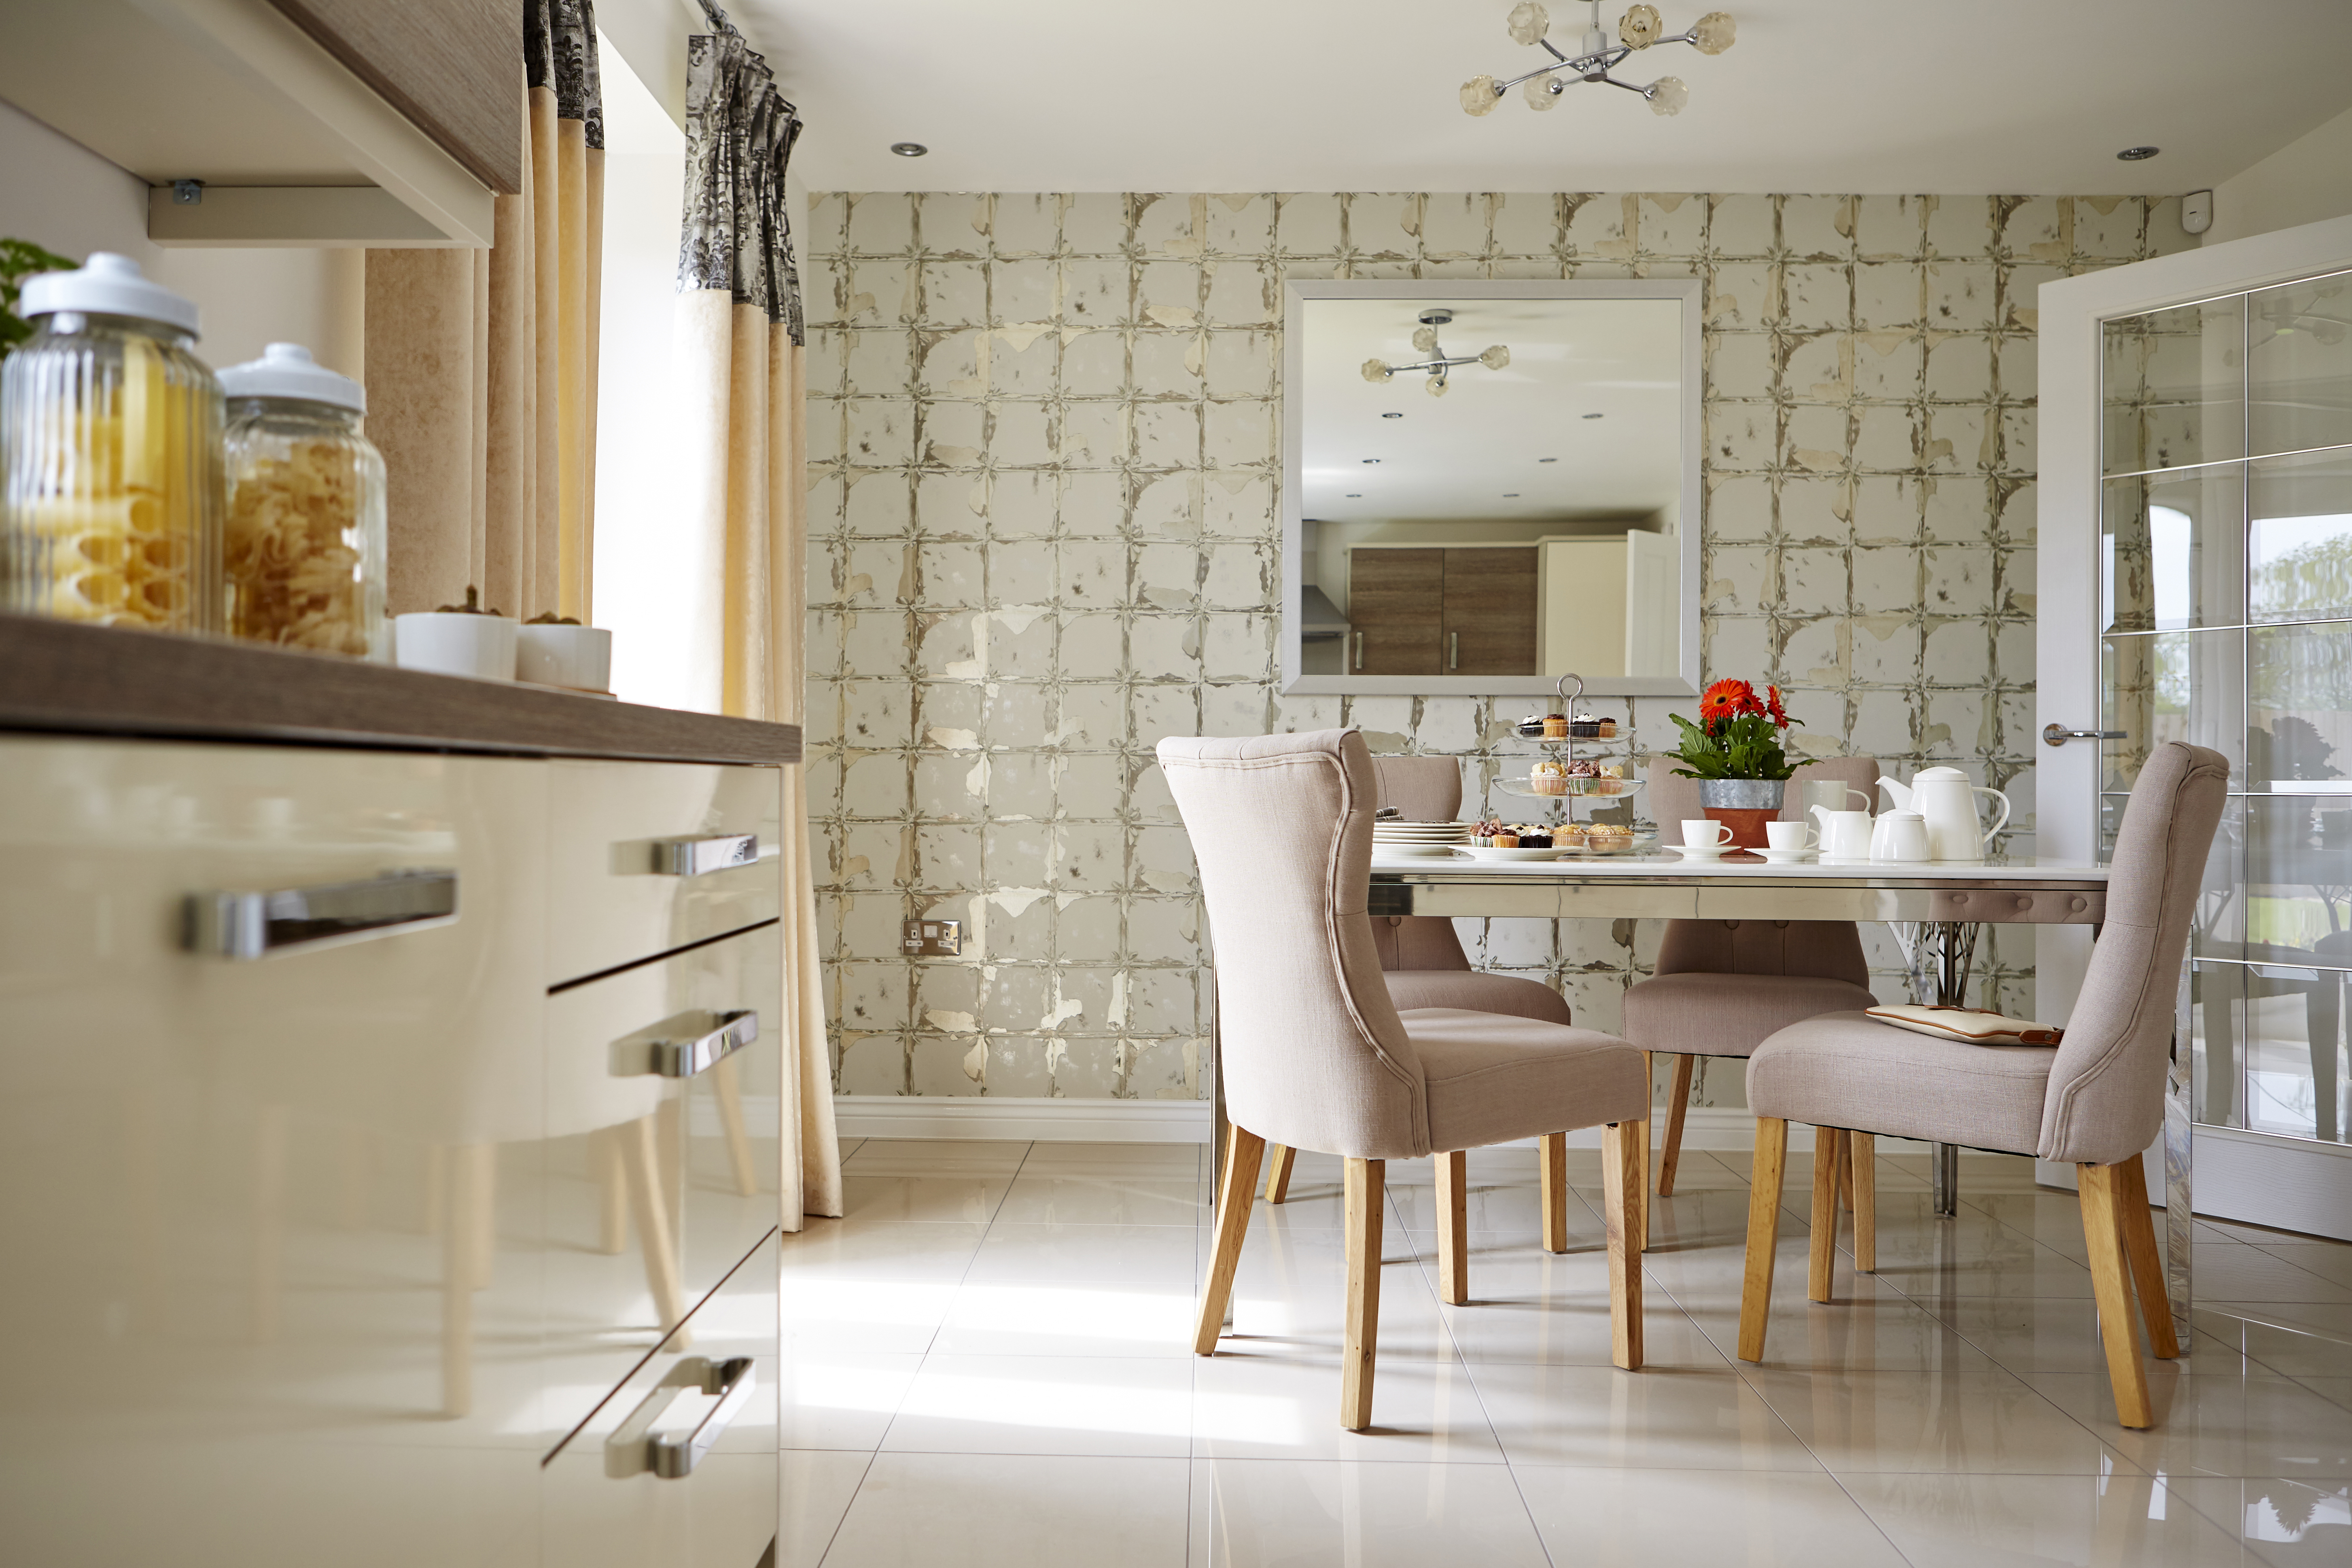 TW SWales_Kingsmead_Caerphilly_PA44_Midlford_Dining_Kitchen